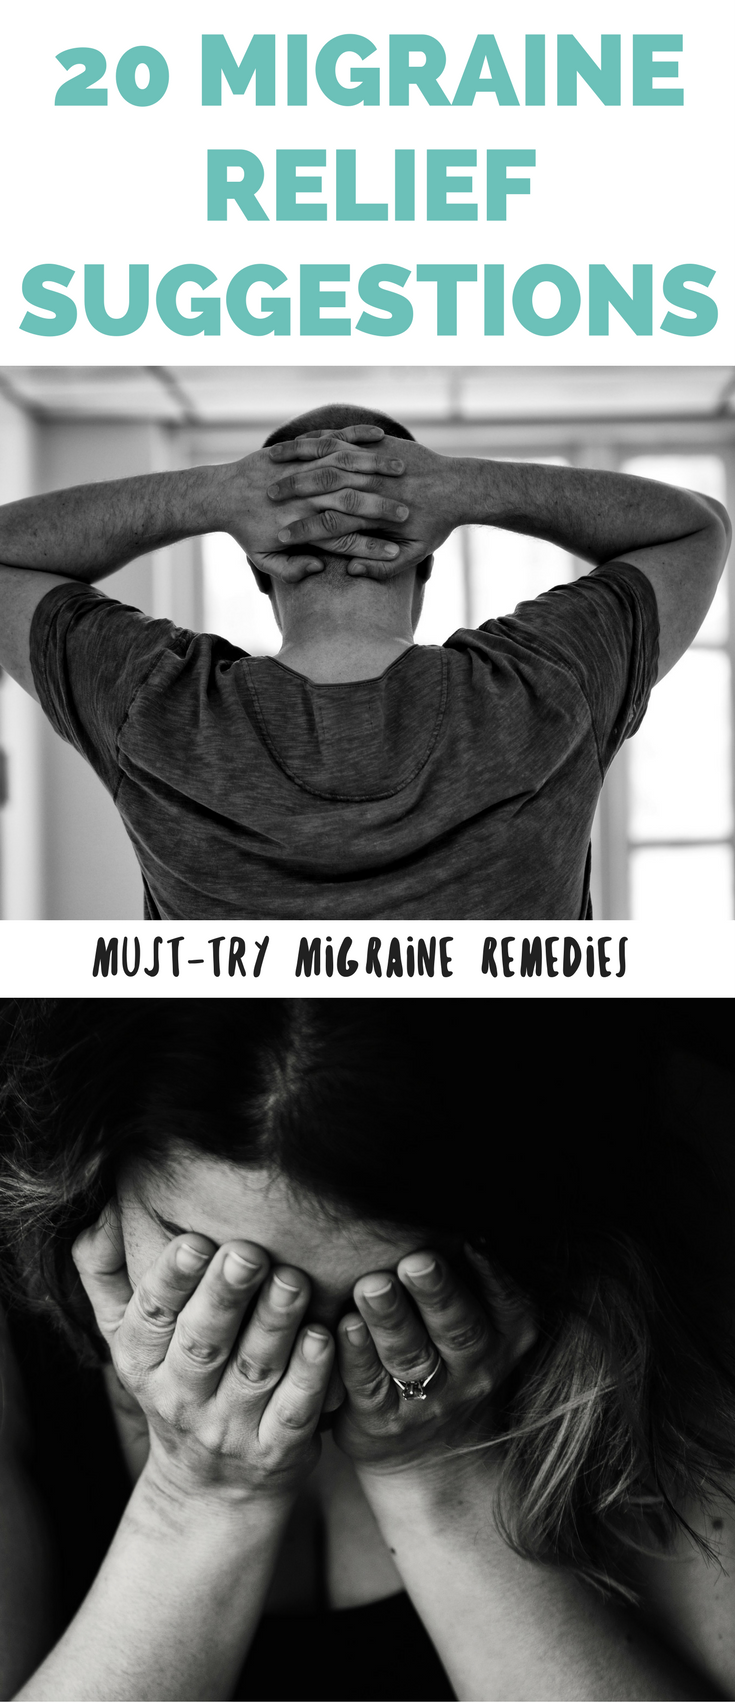 20 Migraine Relief Suggestions - how to get rid of a migraine fast, instant migraine remedies, migraine relief ideas, how to get rid of a migraine, natural migraine relief ideas // Hey There, Chelsie